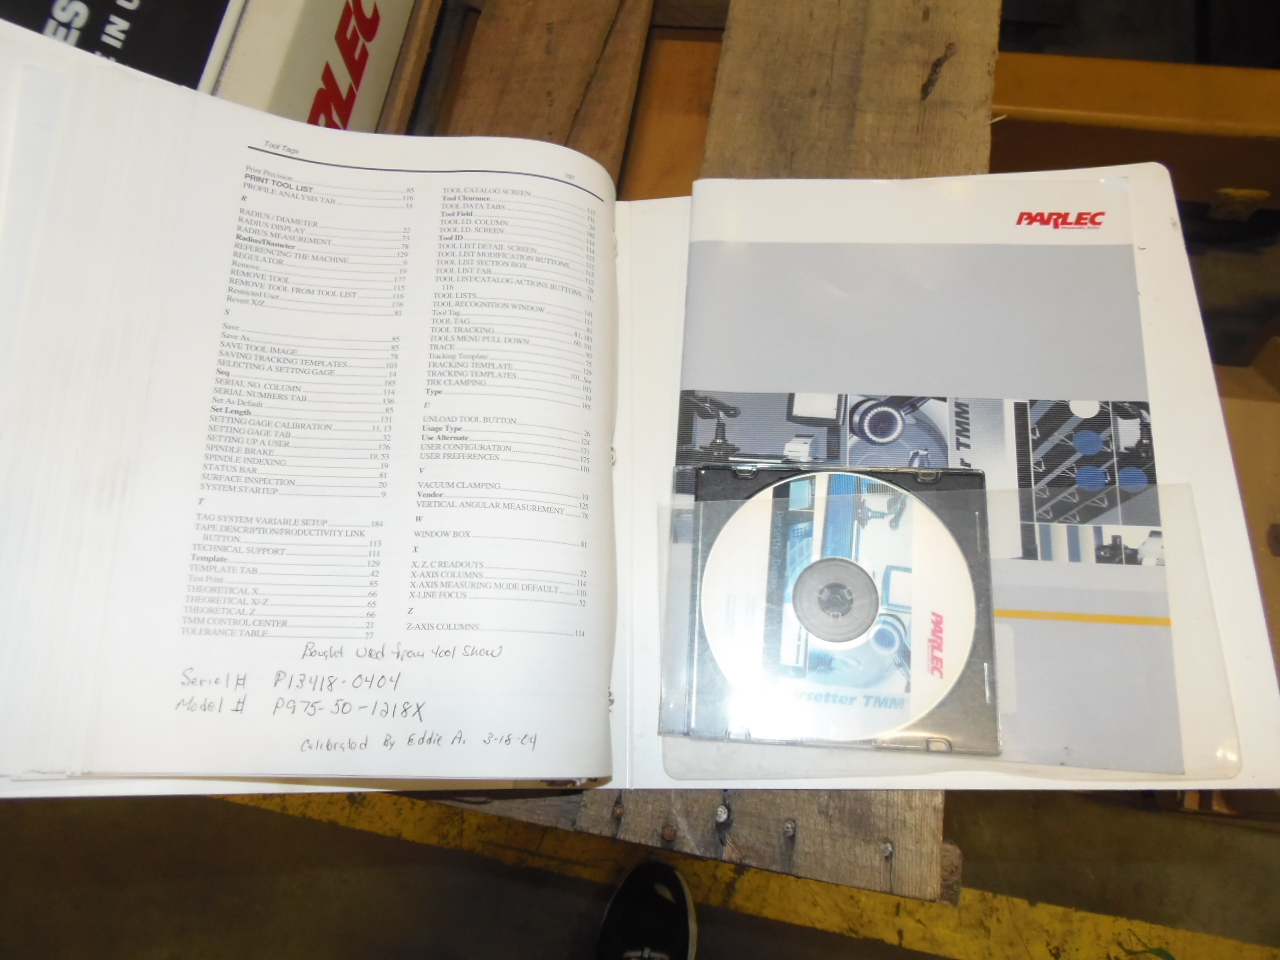 PARLEC TOOL PRESETTER, MODEL P975-50-1218X, 50 TAPER, MANUALS, NO COMPUTER, 2004